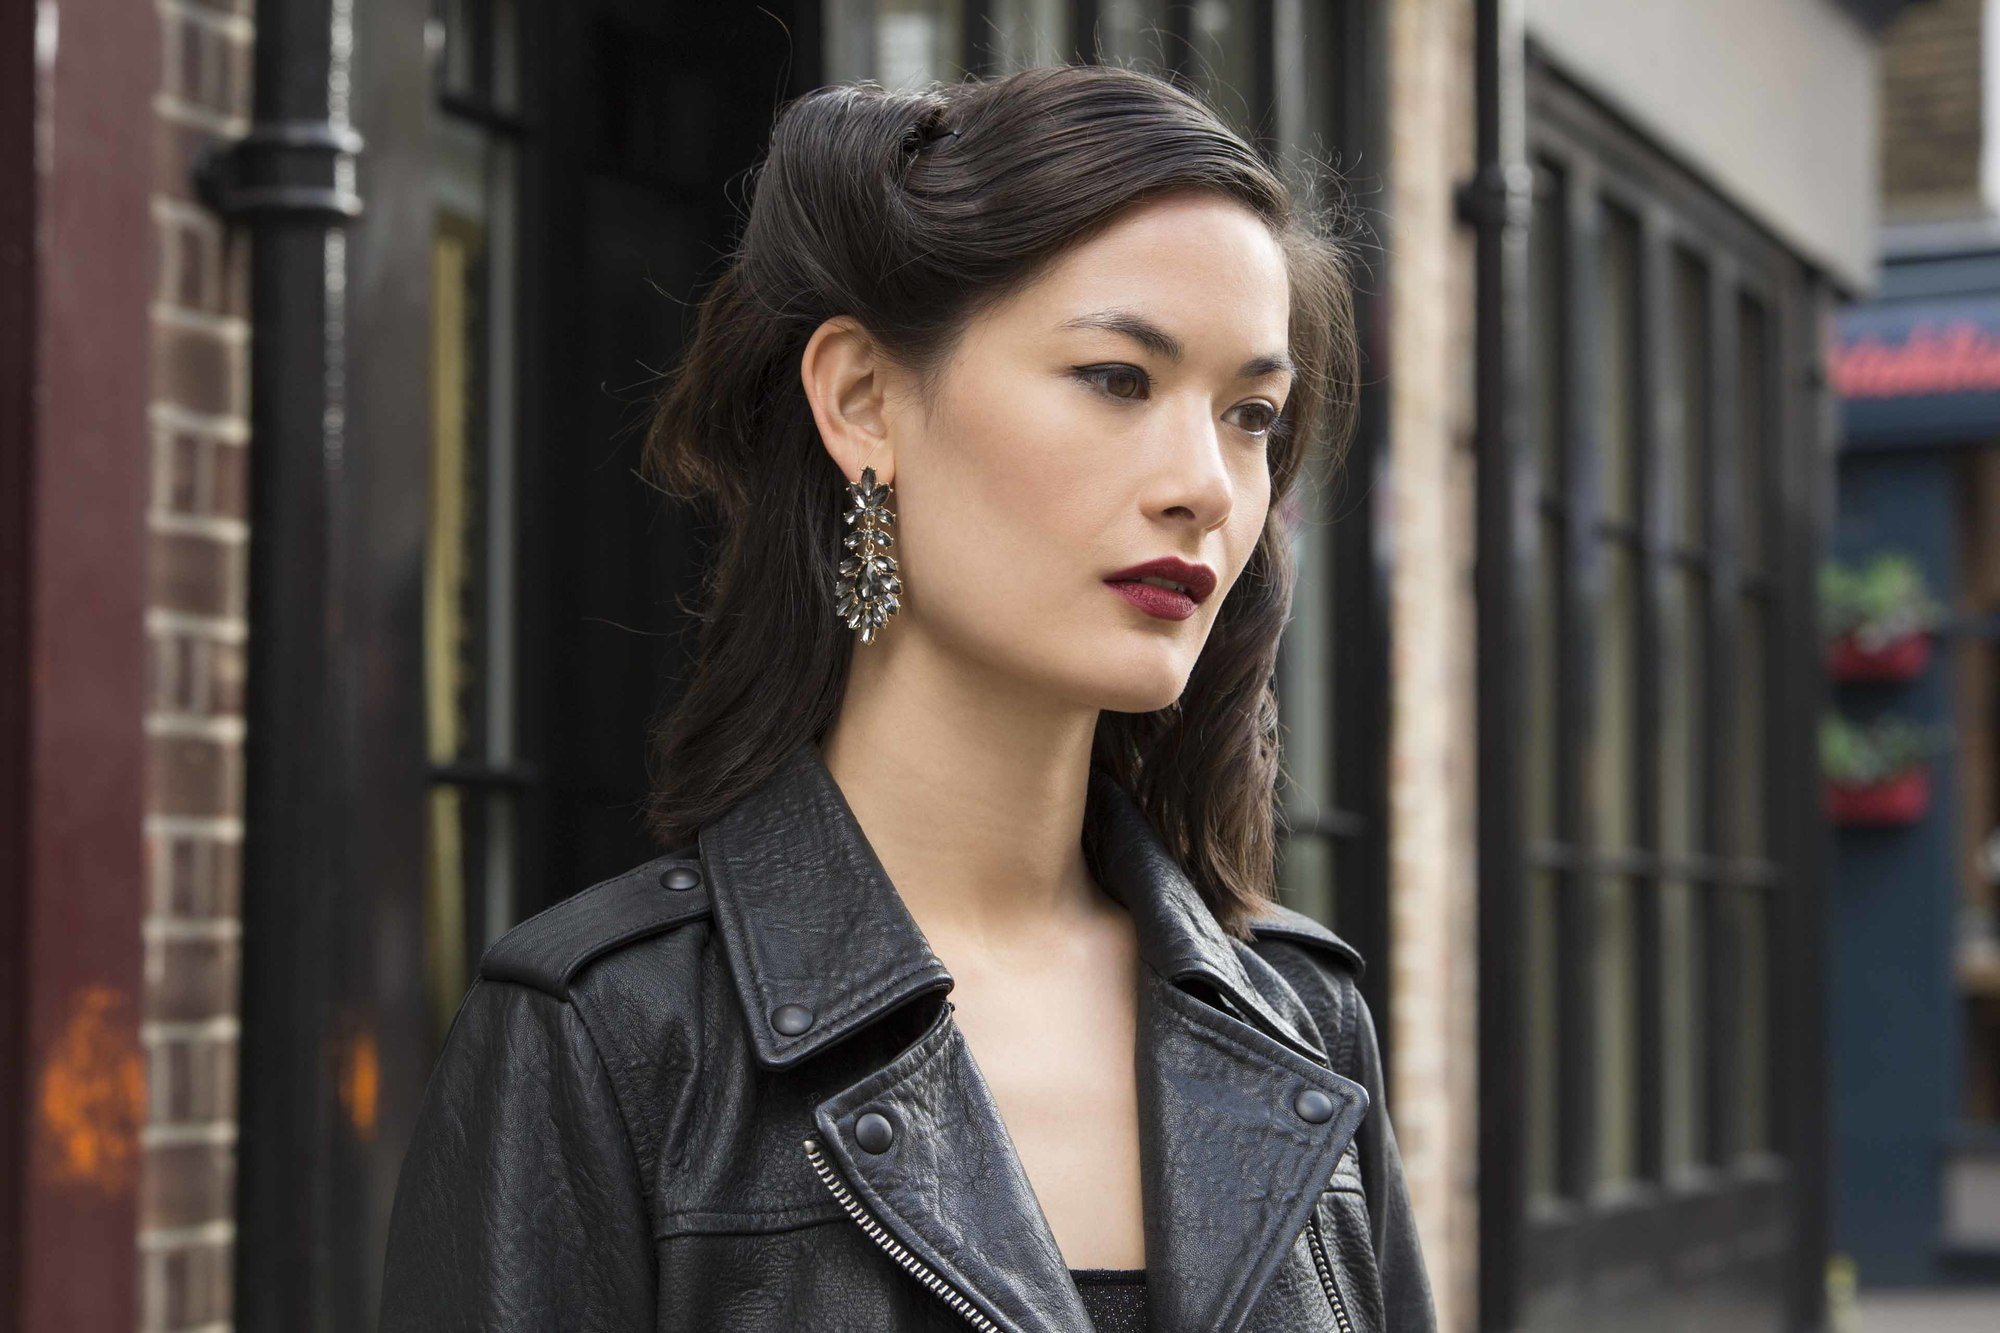 close up shot of woman with brown hair fashioned in a wavy glam roll. wearing black jacket and swanky earrings